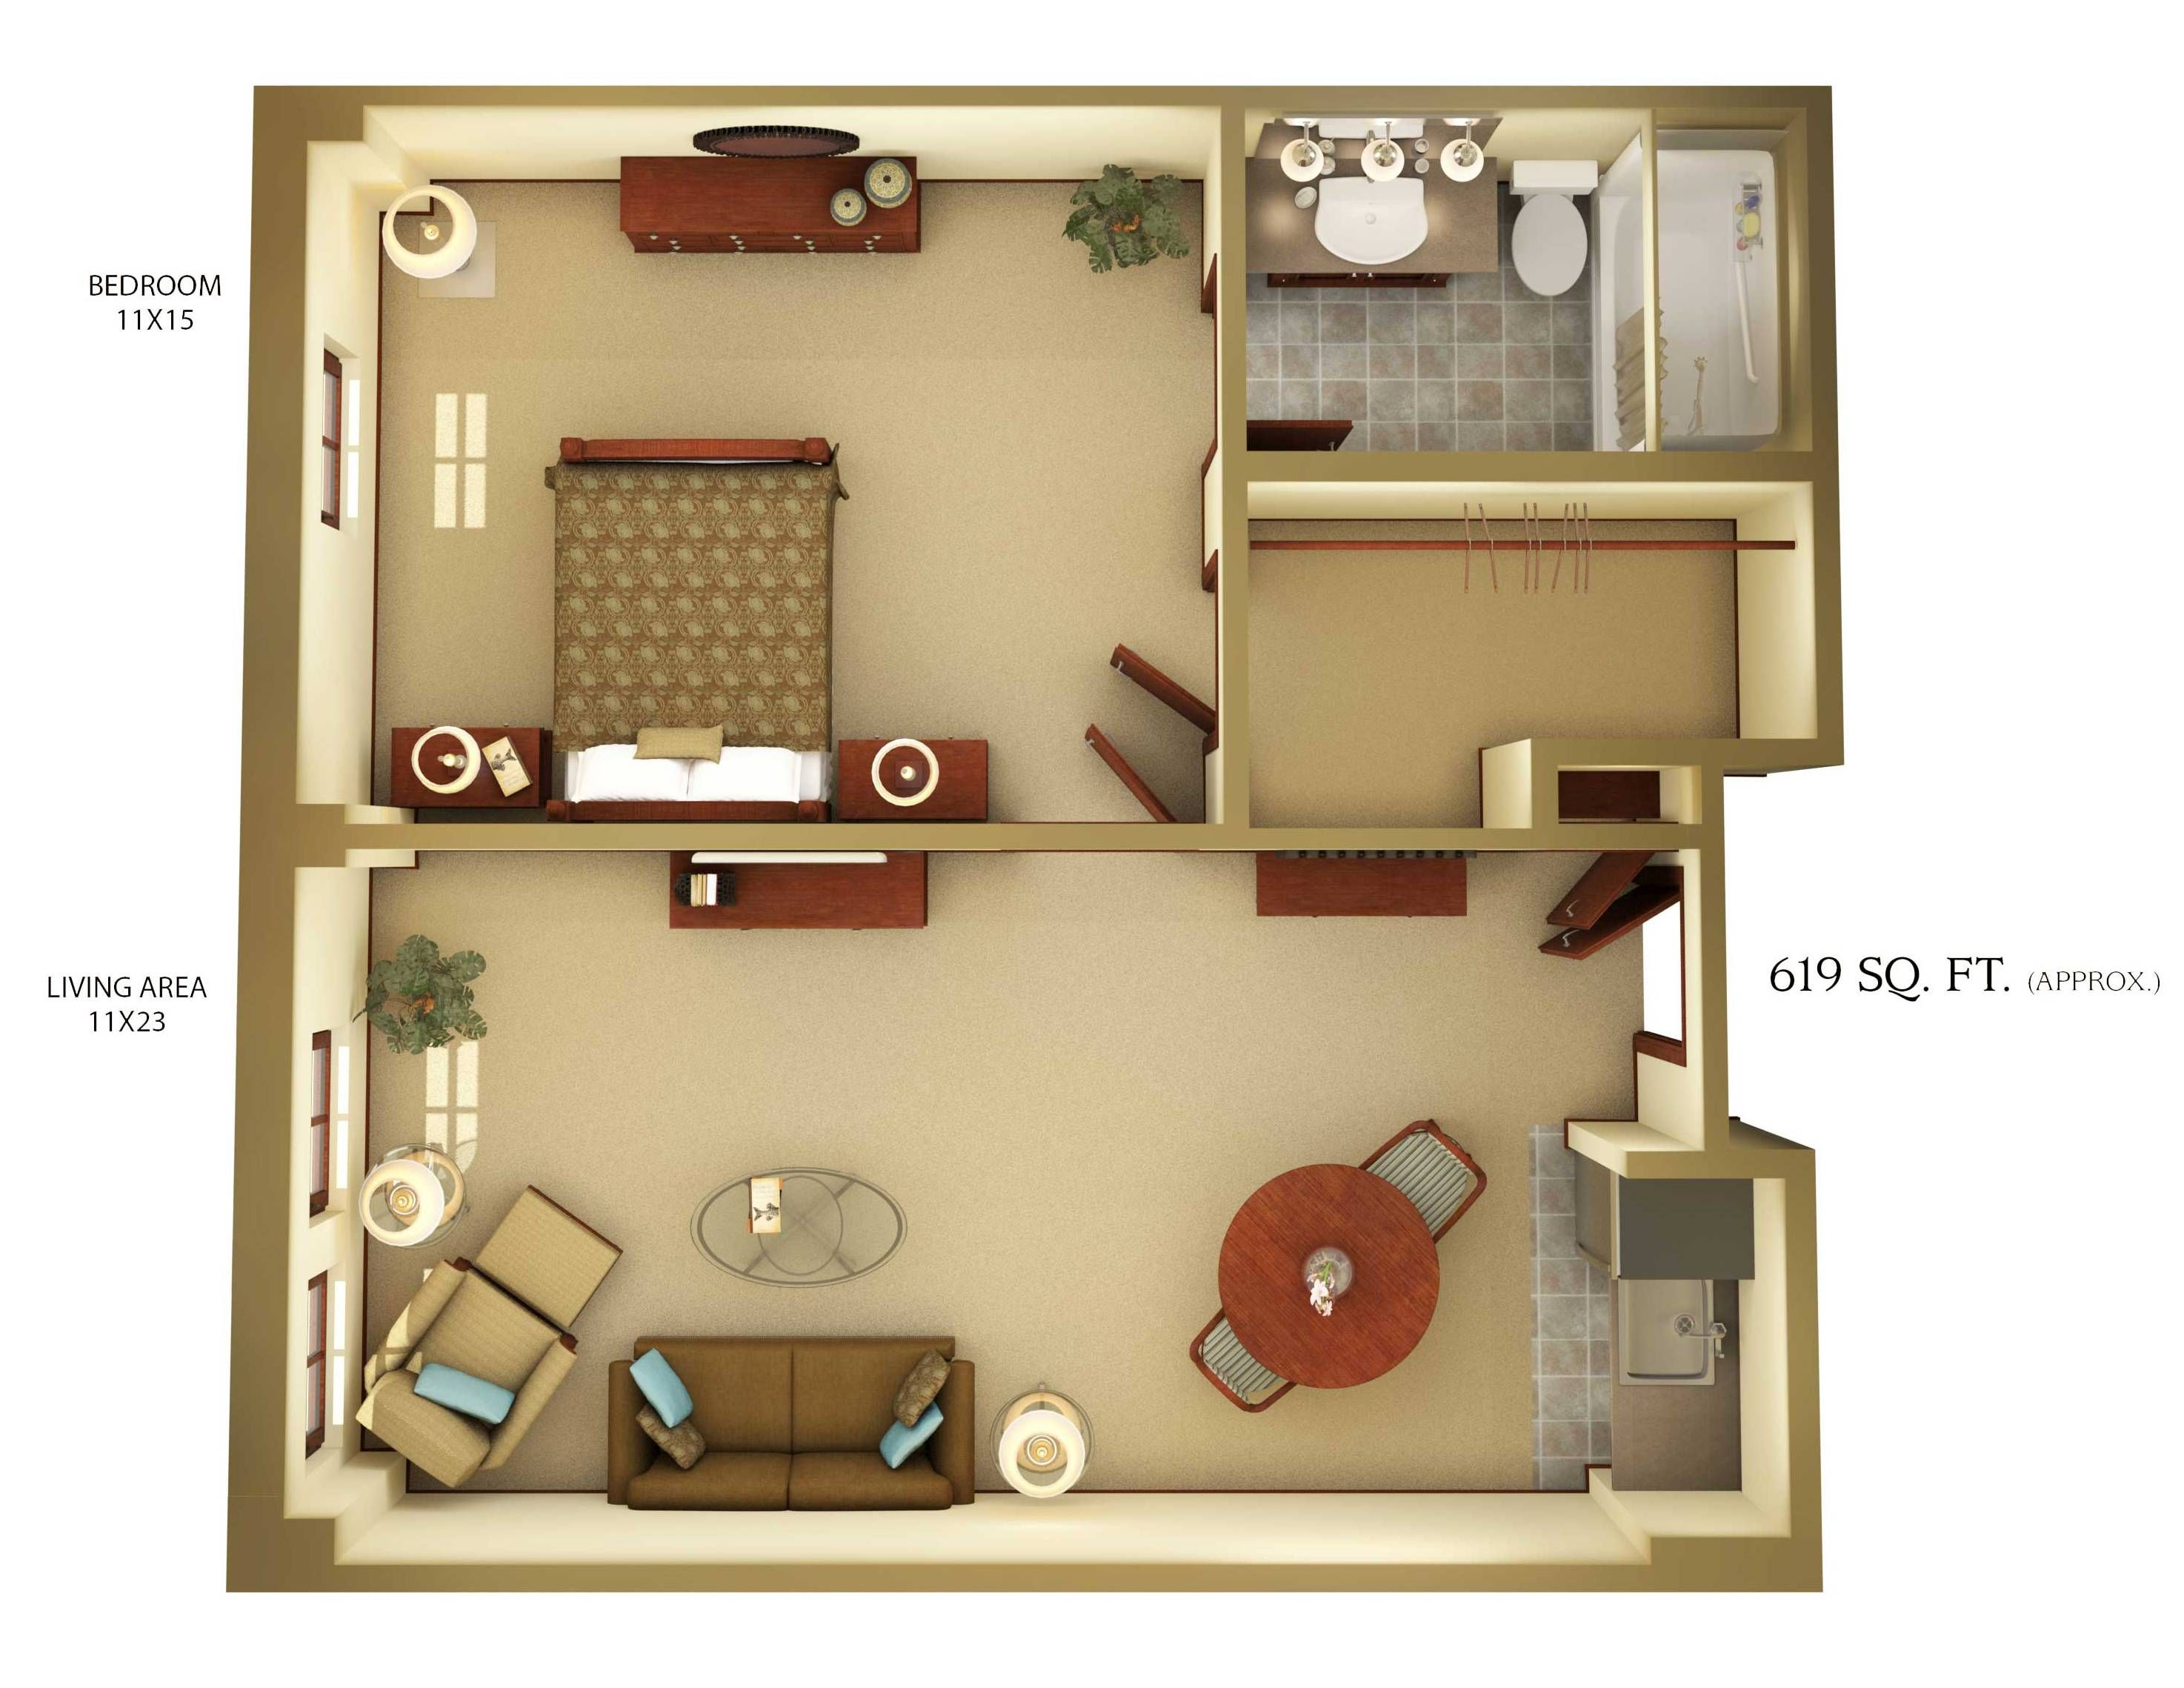 House With In Law Suite